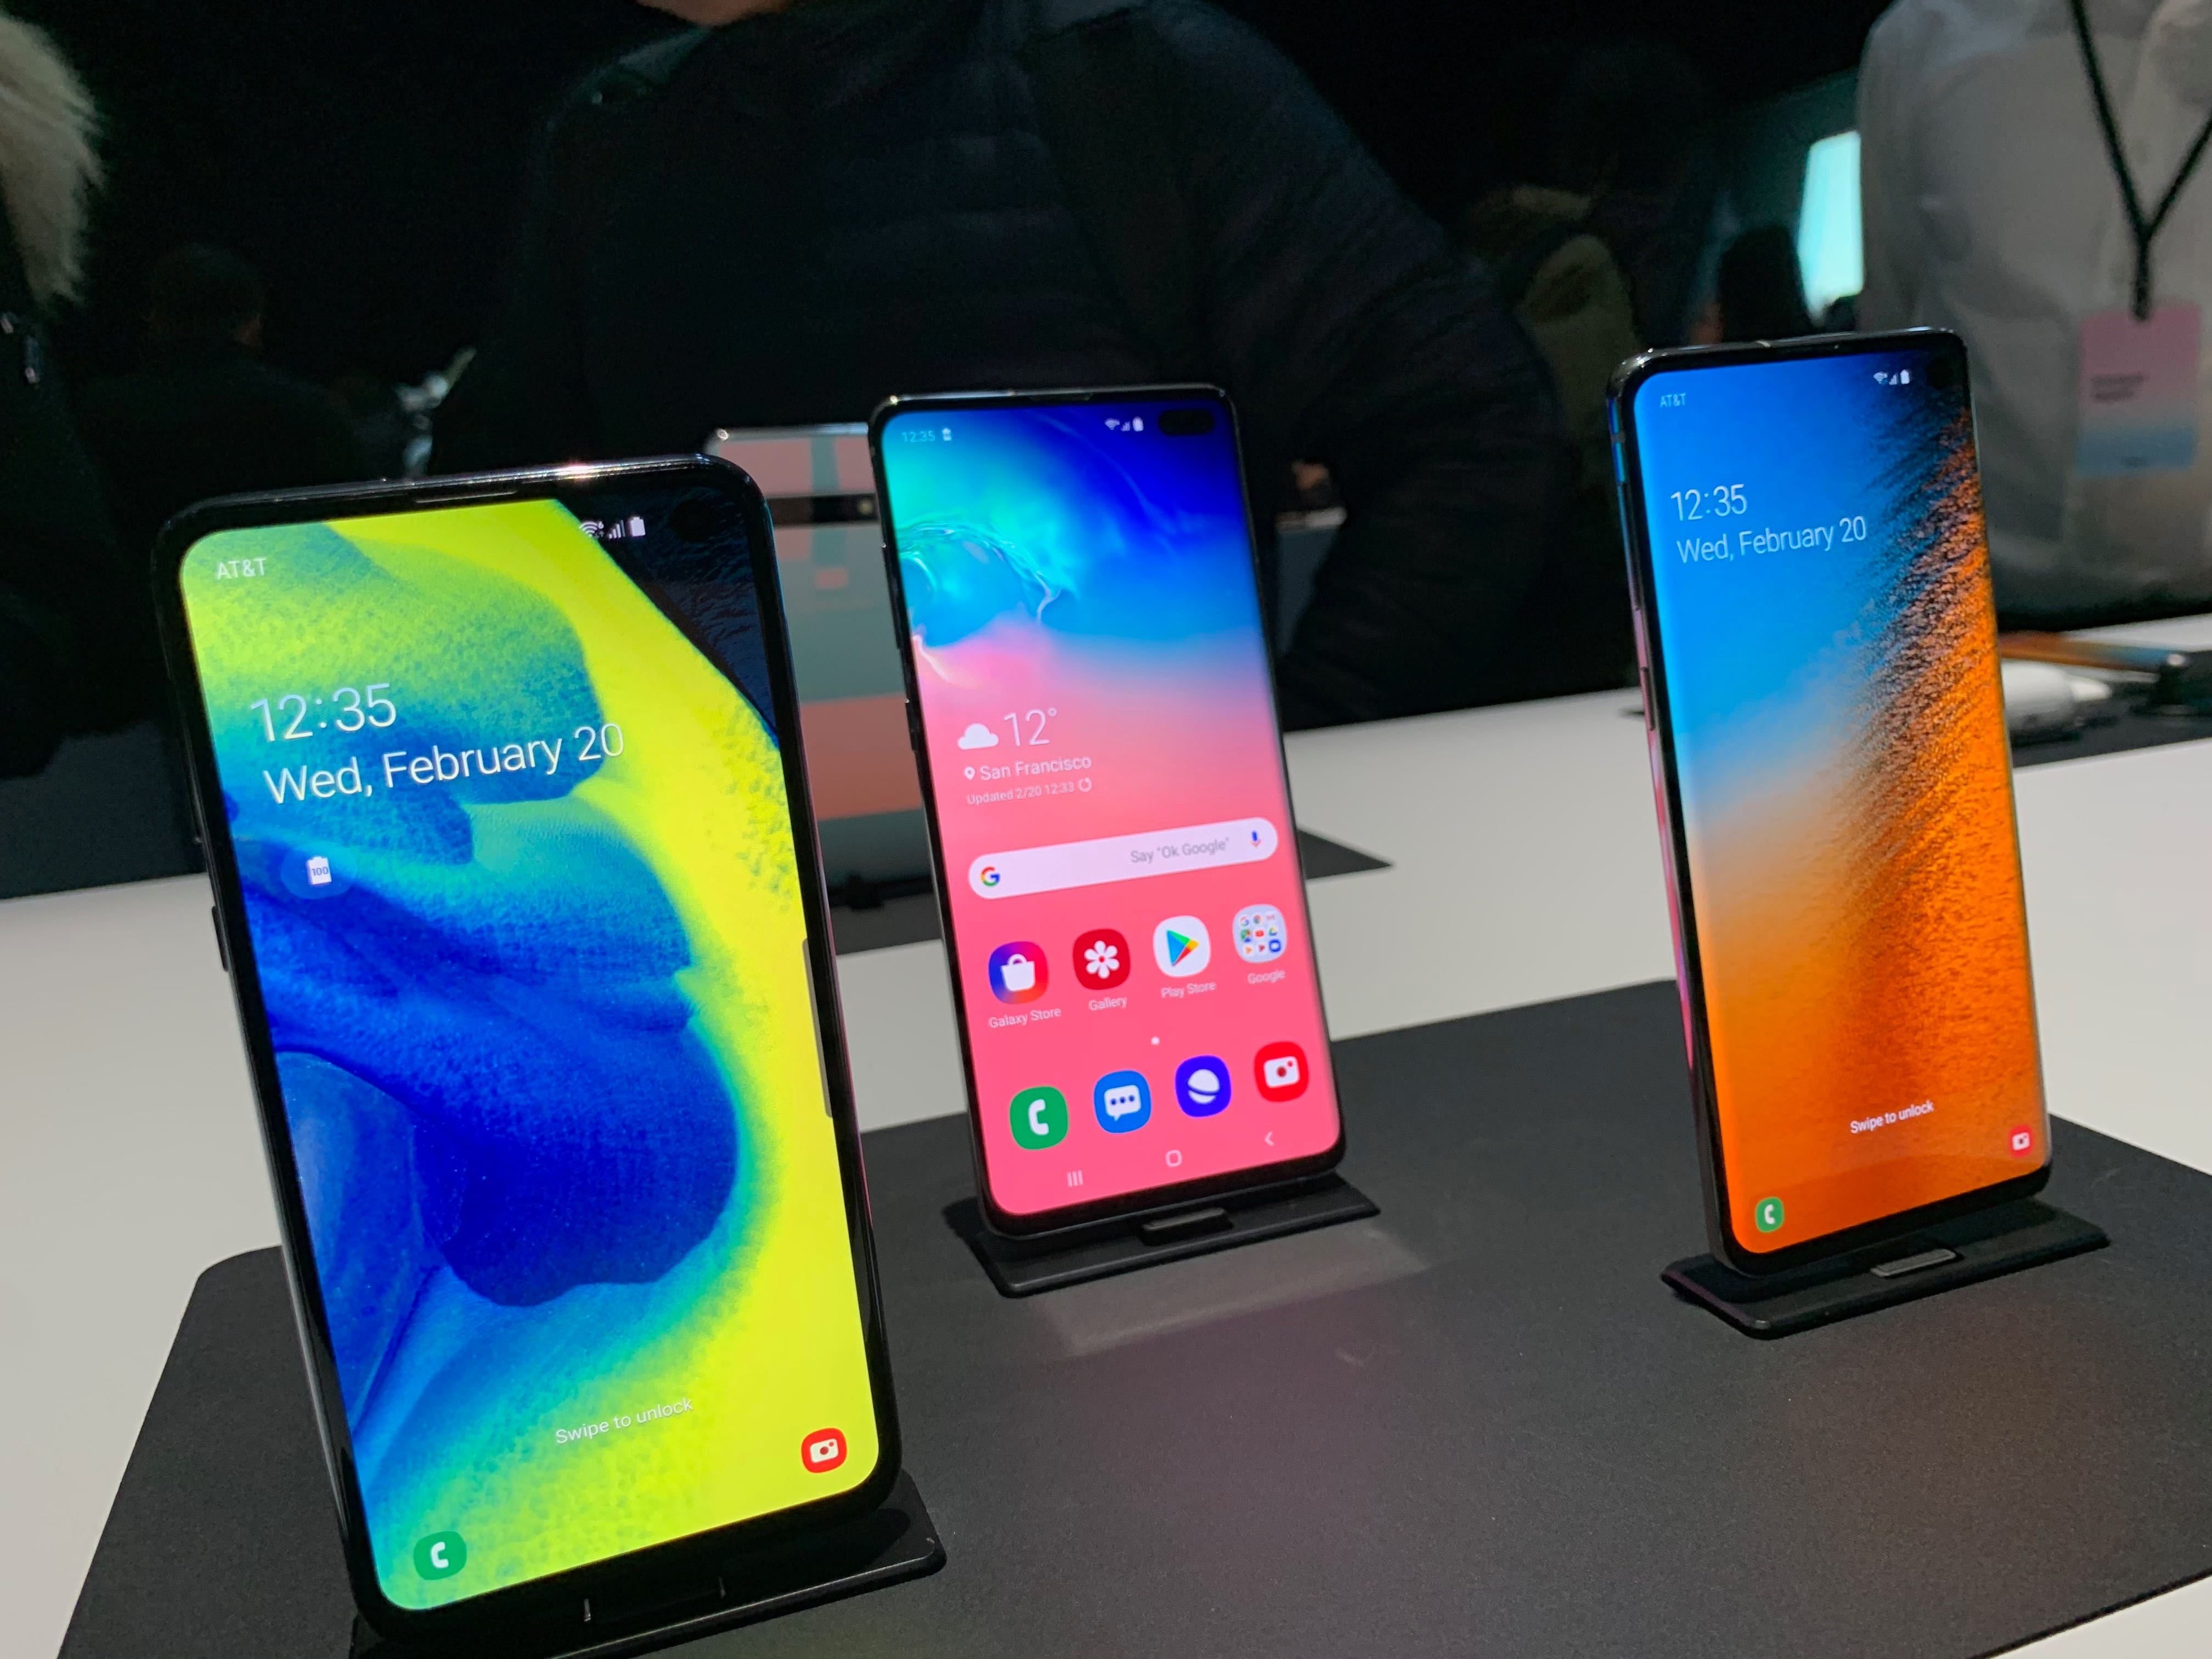 Common Galaxy S10 Keyboard Problems & How to Fix Them